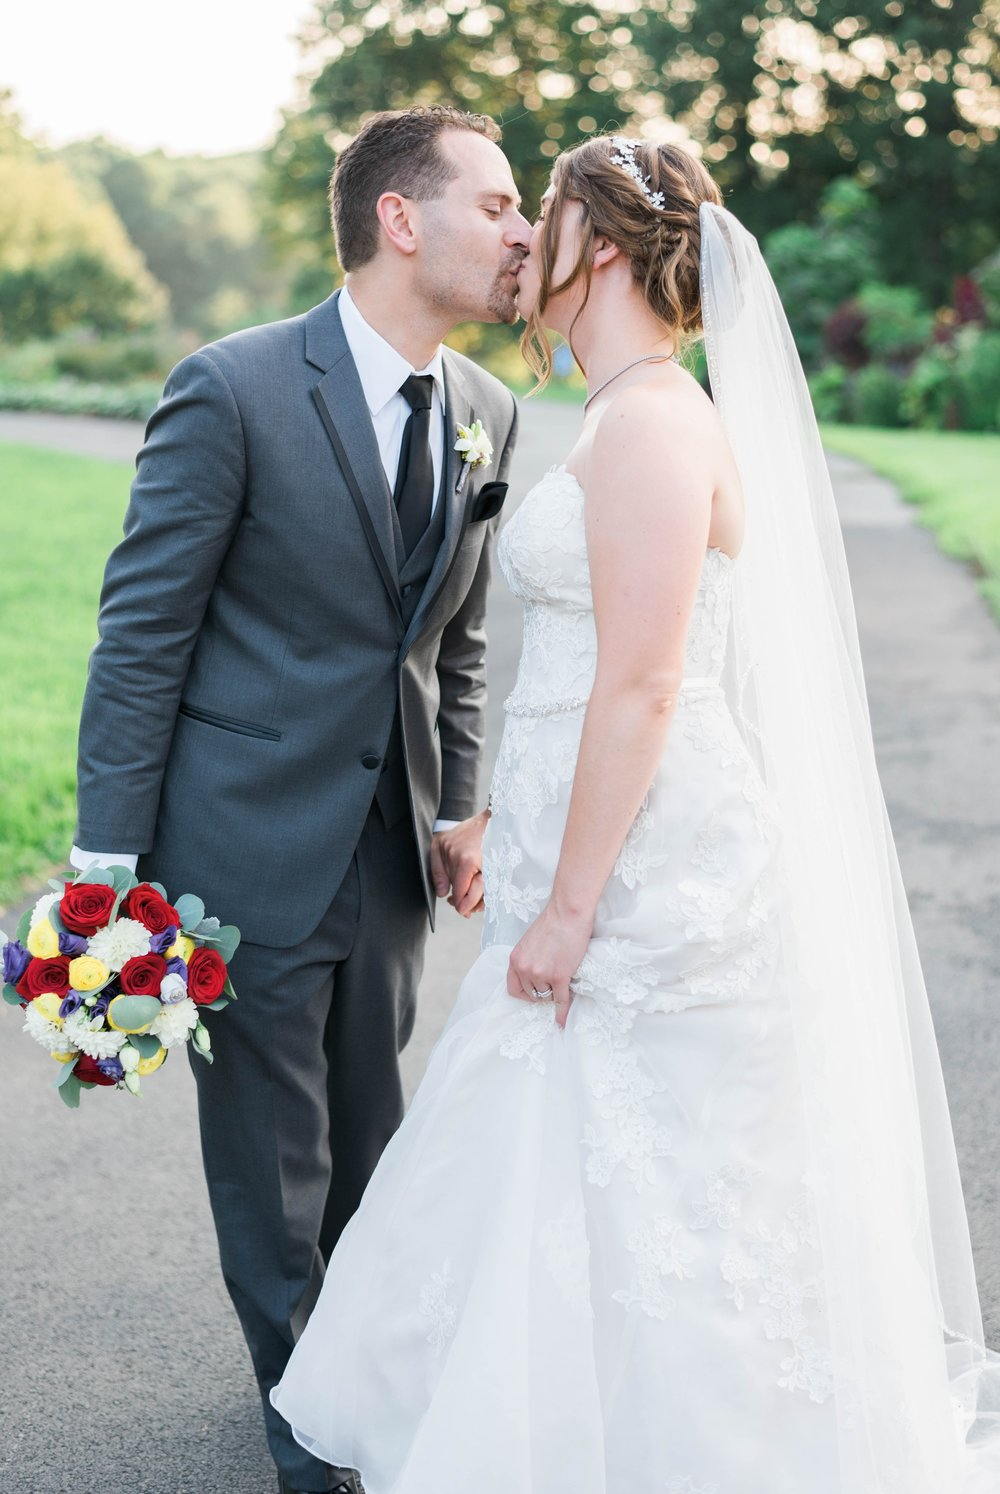 TheAtriumatMeadowlark_Virginiawedding photographer_lynchburgweddingphotographer_DCweddingPhotographer_KristinAaron 43.jpg